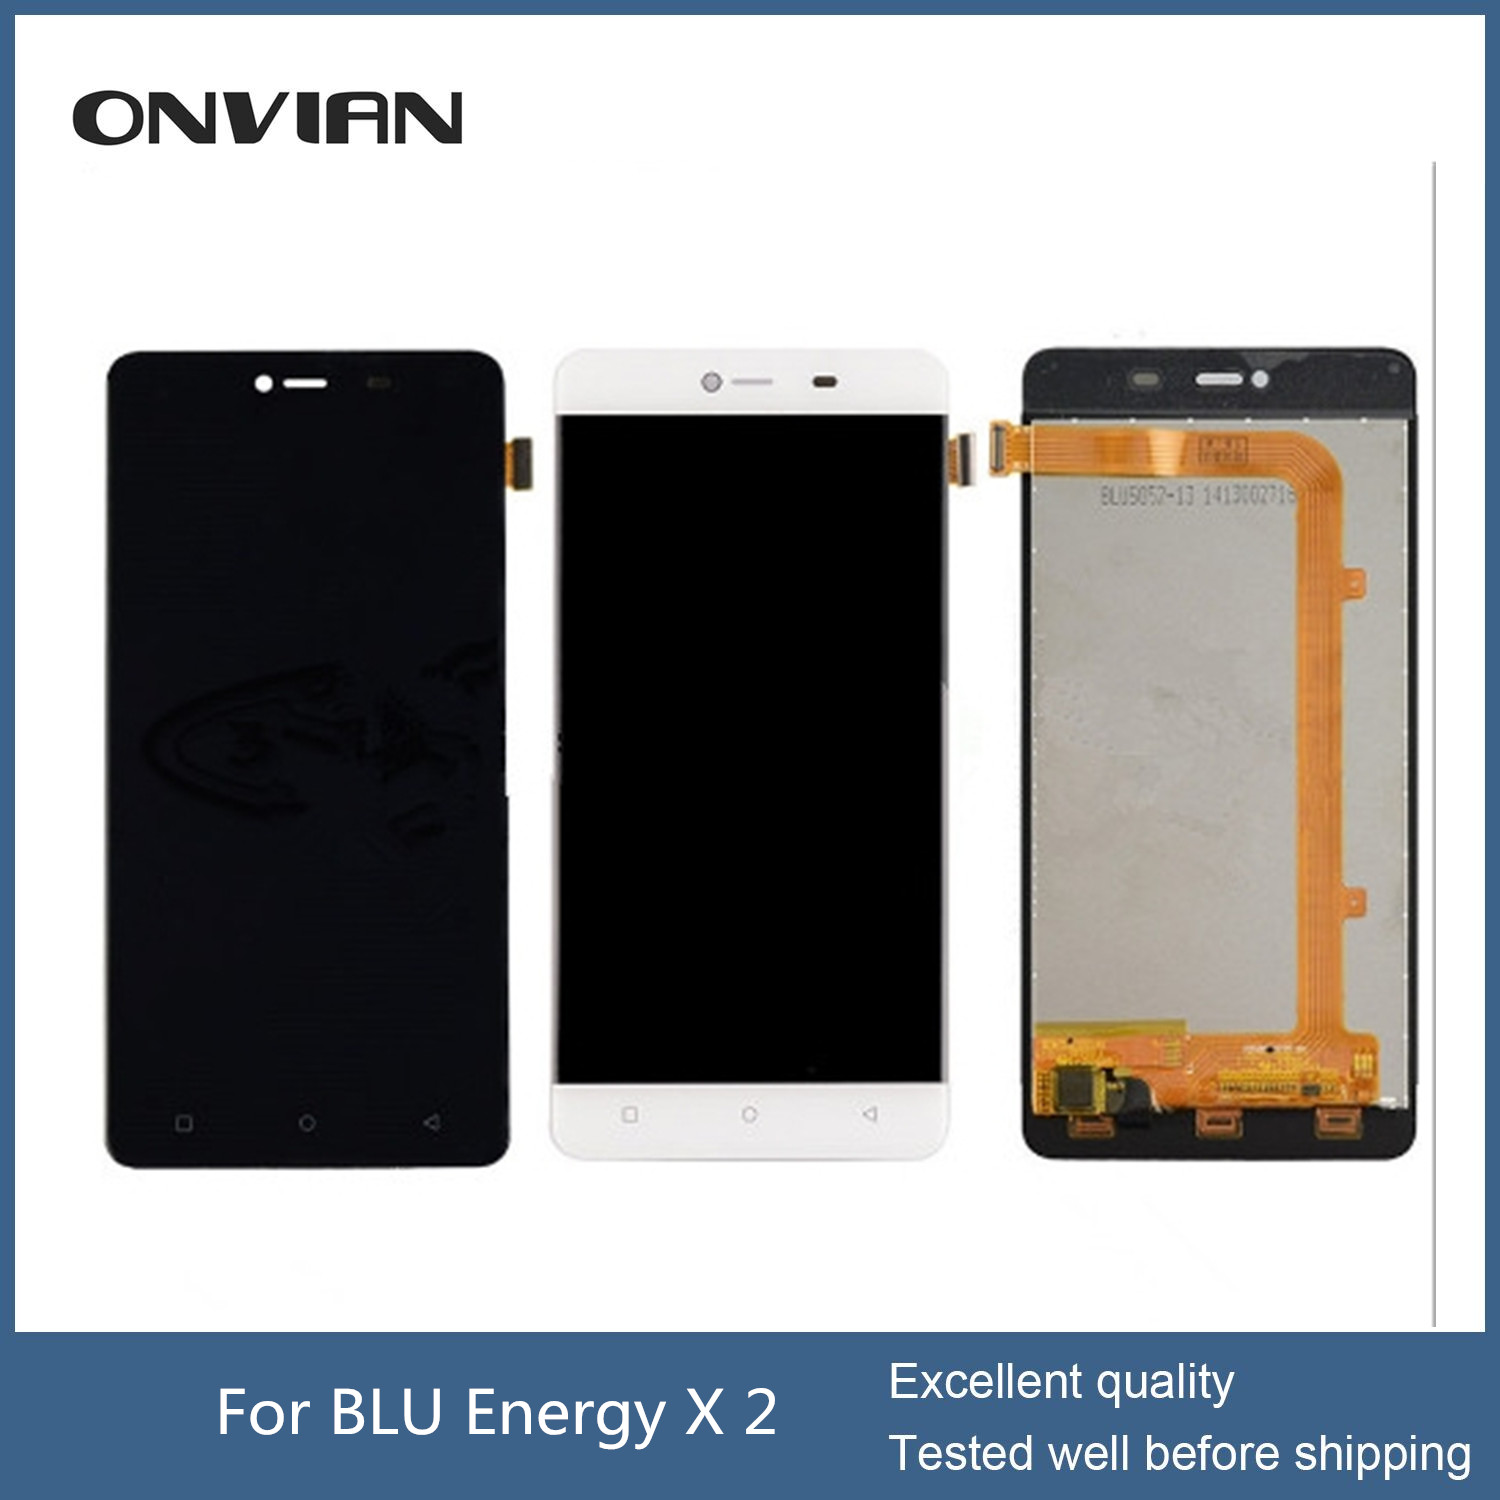 BLU Energy X 2 E050U LCD Display Touch Screen Digitizer Assembly repair replacement parts for BLU Energy X2 E050U